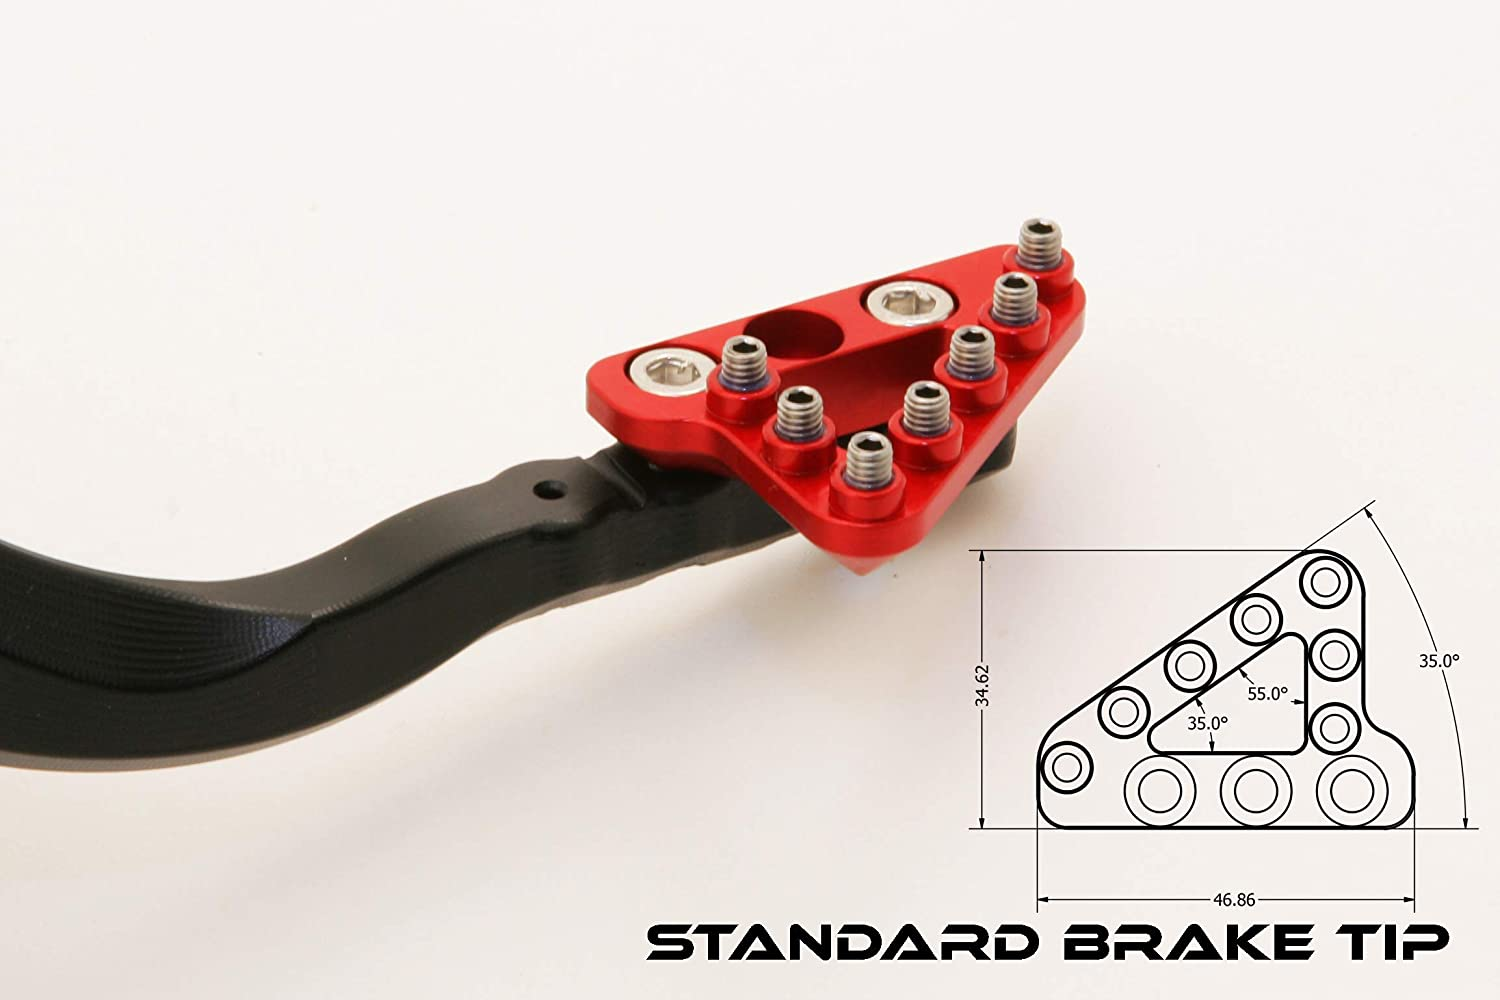 Compatible with Honda CRF450X Hammerhead Forged Rear Brake Pedal with Tip options